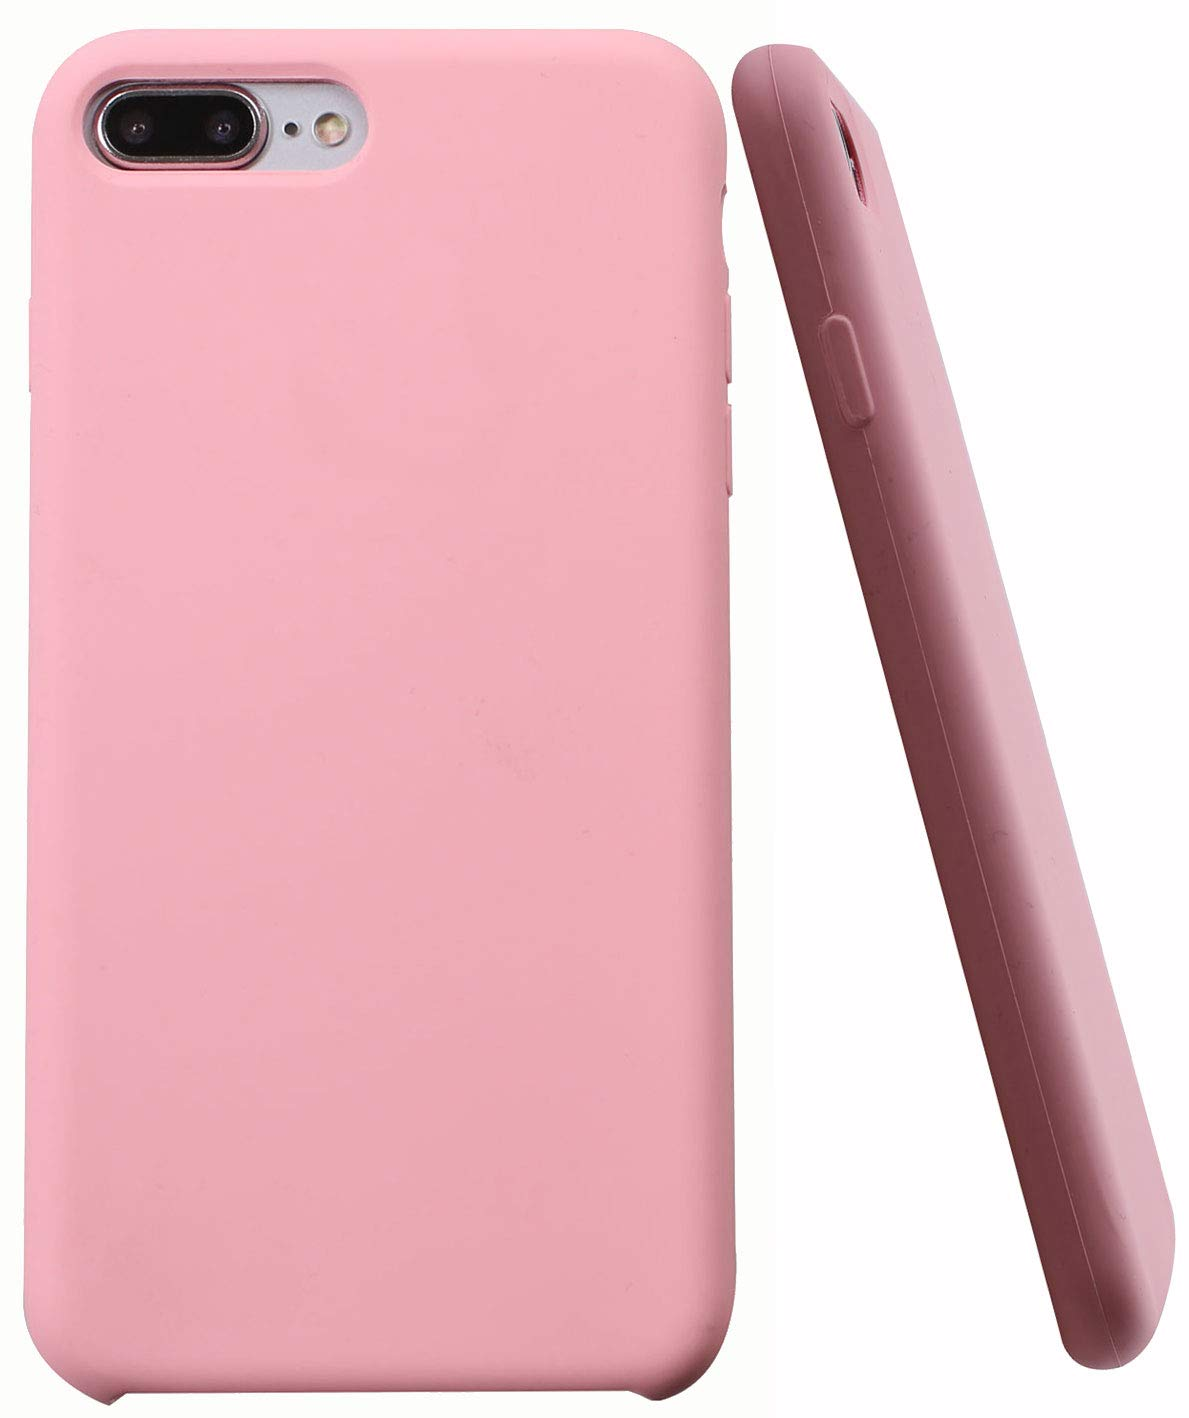 check out 0072f ac15e Soft Liquid Silicone iPhone 8 Plus Cover Case Inner Soft Microfiber Cloth  Lining Cushion for Apple iPhone 7 Plus/iPhone 8 Plus (Light Pink)